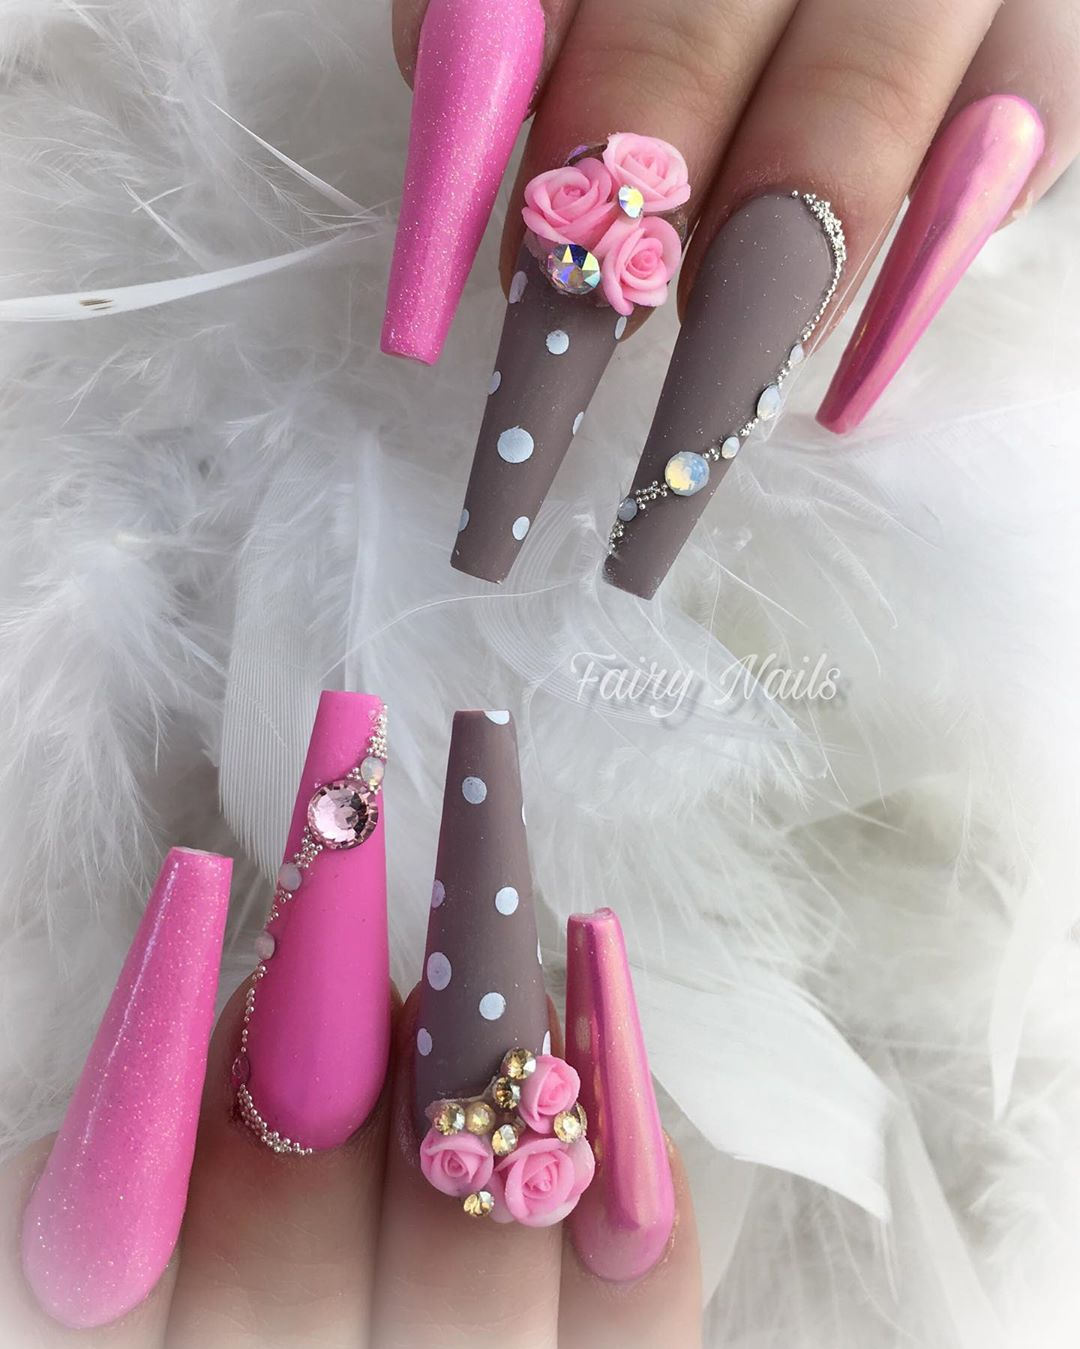 16 3D Flower Nail Art Designs